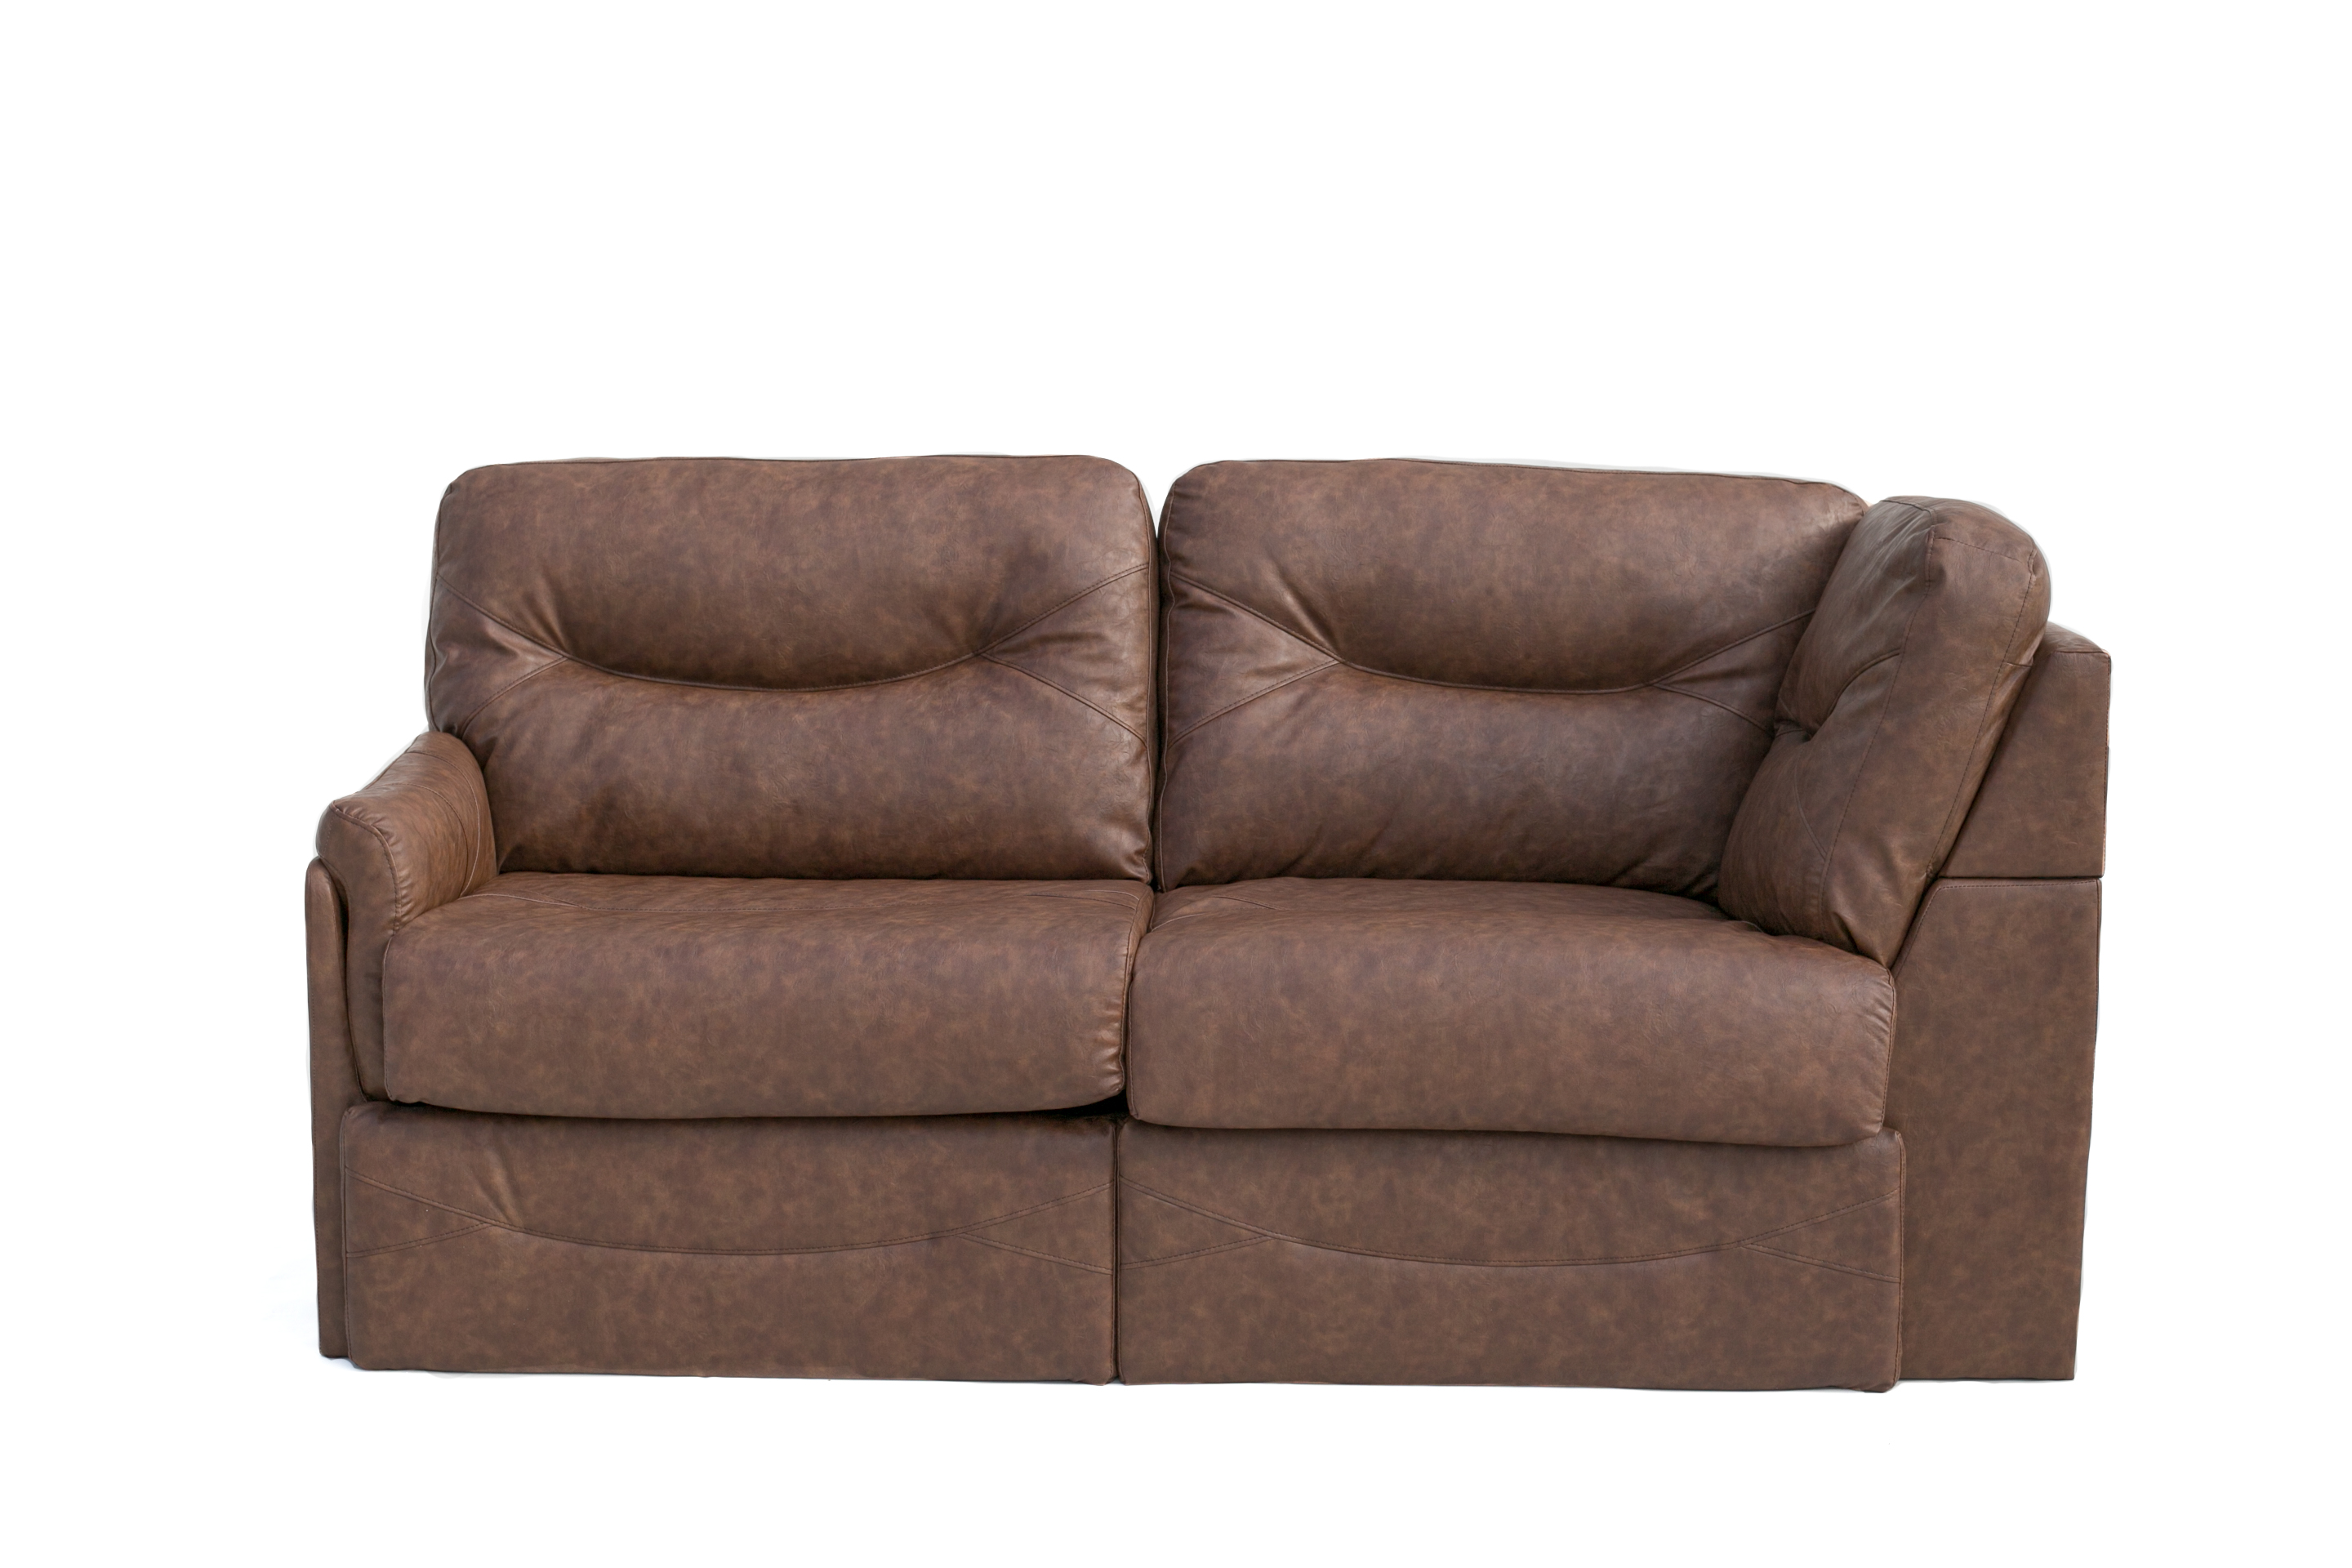 80 Sleeper Sofa In Toffee Prima Leatherette Pr1801 004